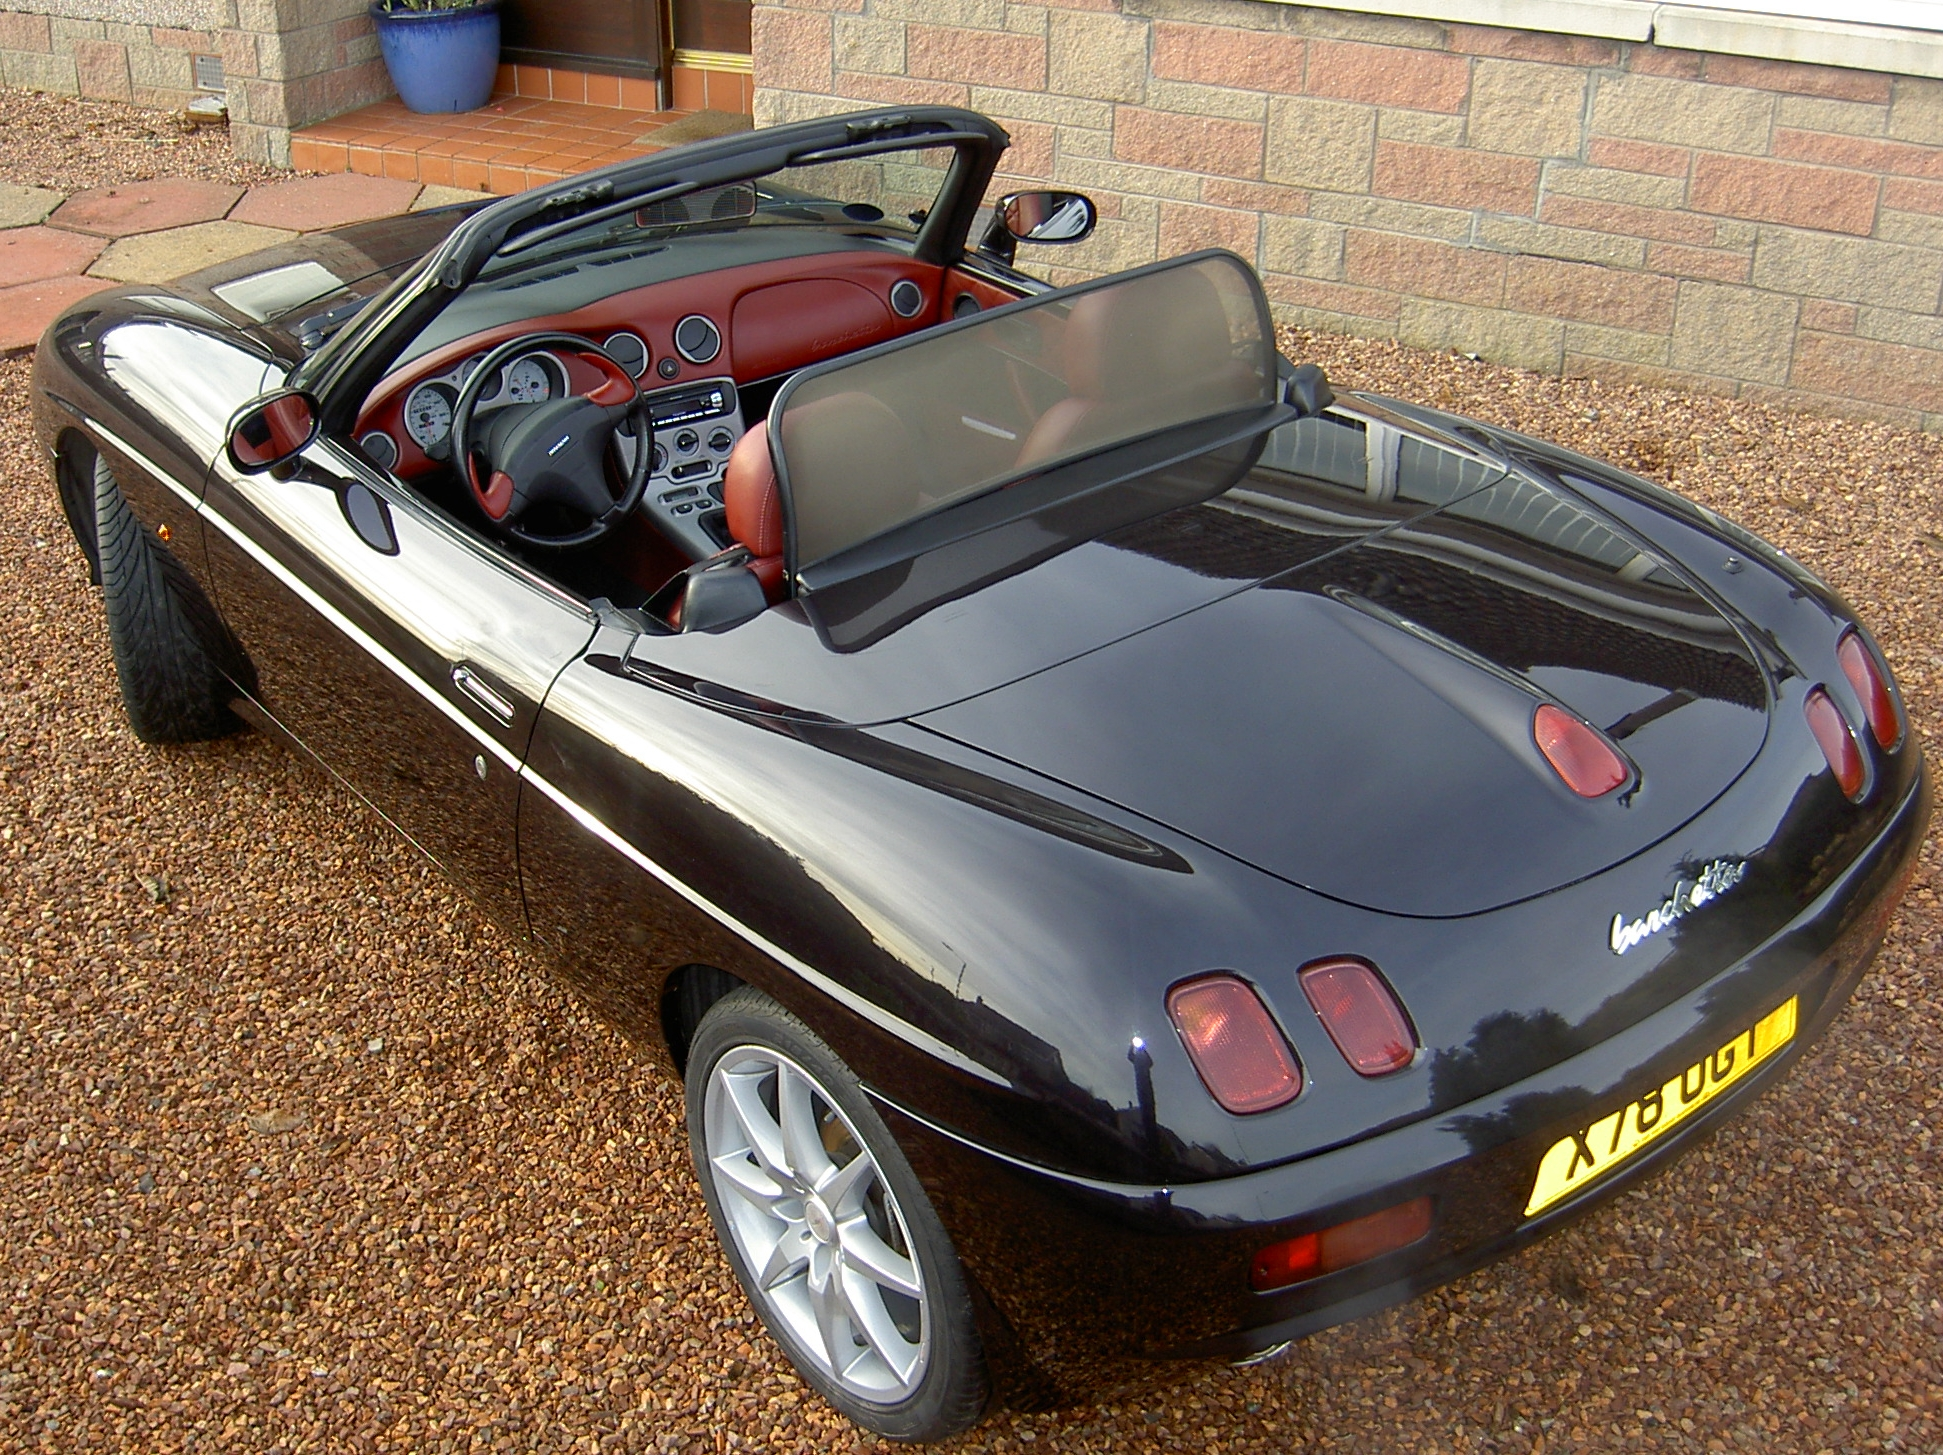 fun also i owners interesting club a latest cache by the car might fiat be thought and feature news earliest to barchetta for just uk owned member it